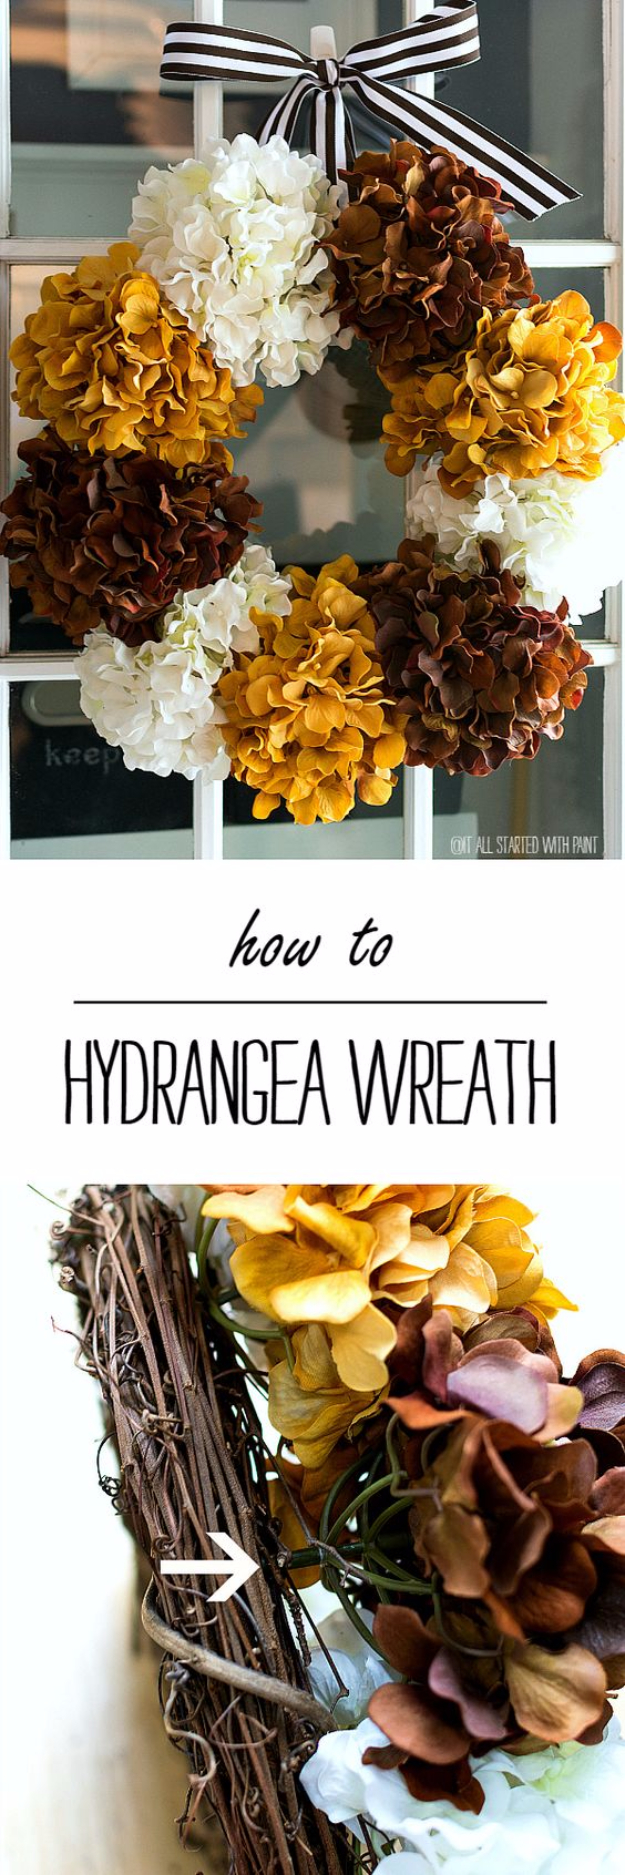 35 Fall Wreaths for Your Door - Hydrangea Wreath For Fall- Fall Wreaths For Front Door, Fall Wreaths Ideas To Try, Easy DIY Fall Wreaths, Brilliant Fall Wreath DIY, Porch Decor, Cool Ideas For Fall, Fall Projects http://diyjoy.com/fall-wreaths-door